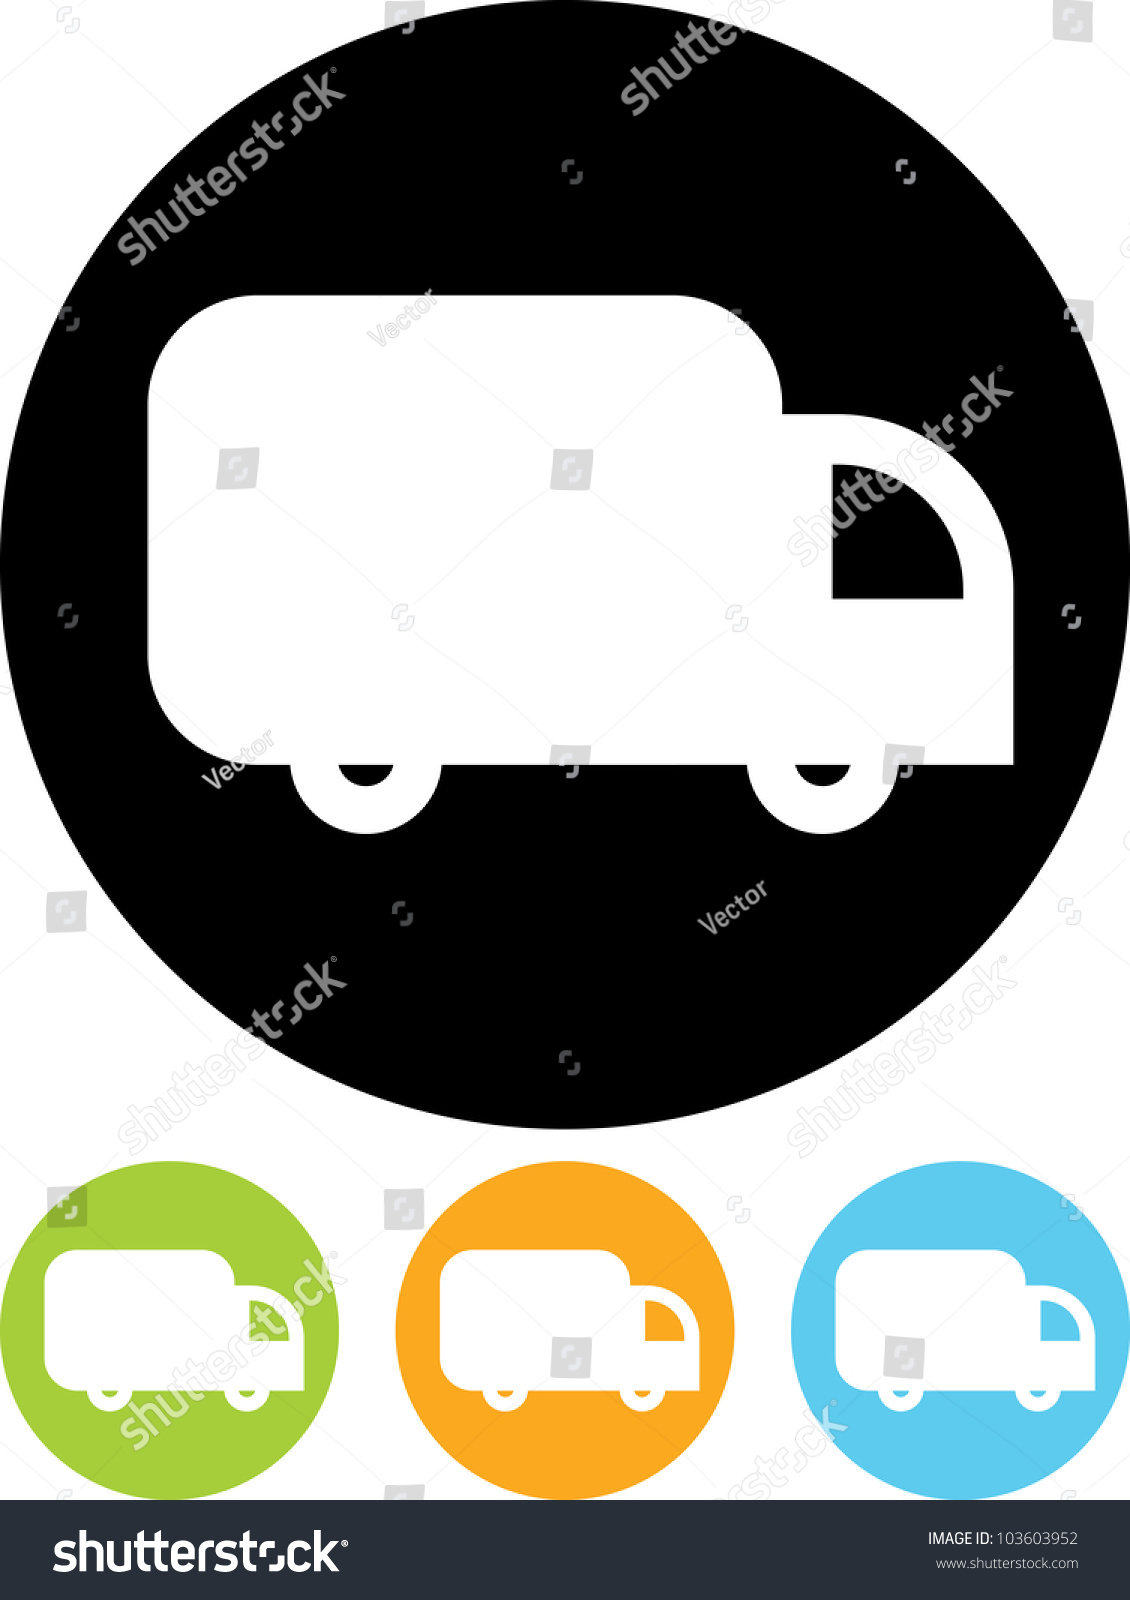 delivery truck icon vector - photo #37